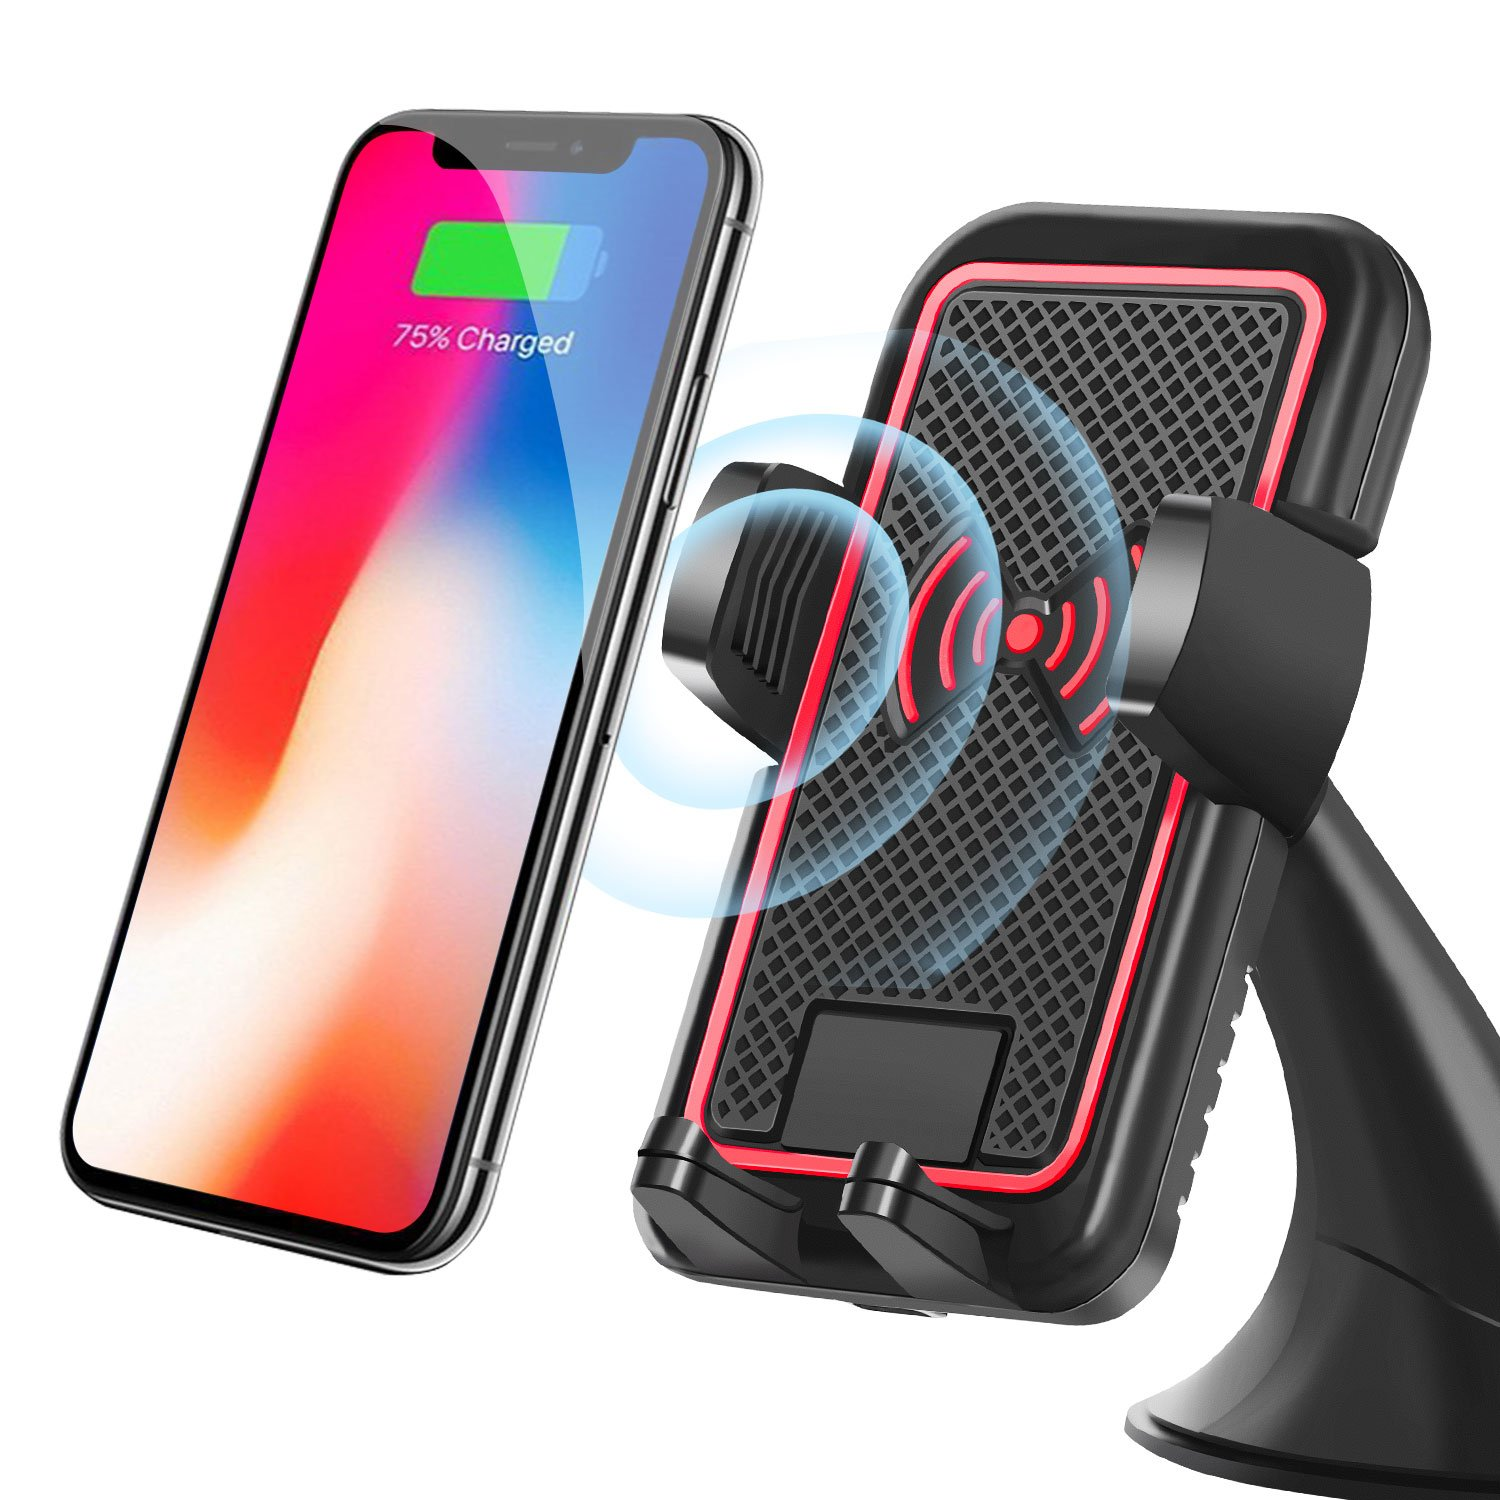 2-in-1 Wireless Car Charger, ARW Car Mount Phone Holder for iPhone X 8 Plus 7 6s SE Samsung Galaxy S9 S8 Edge S7 S6 Note 8 & Other Smartphone